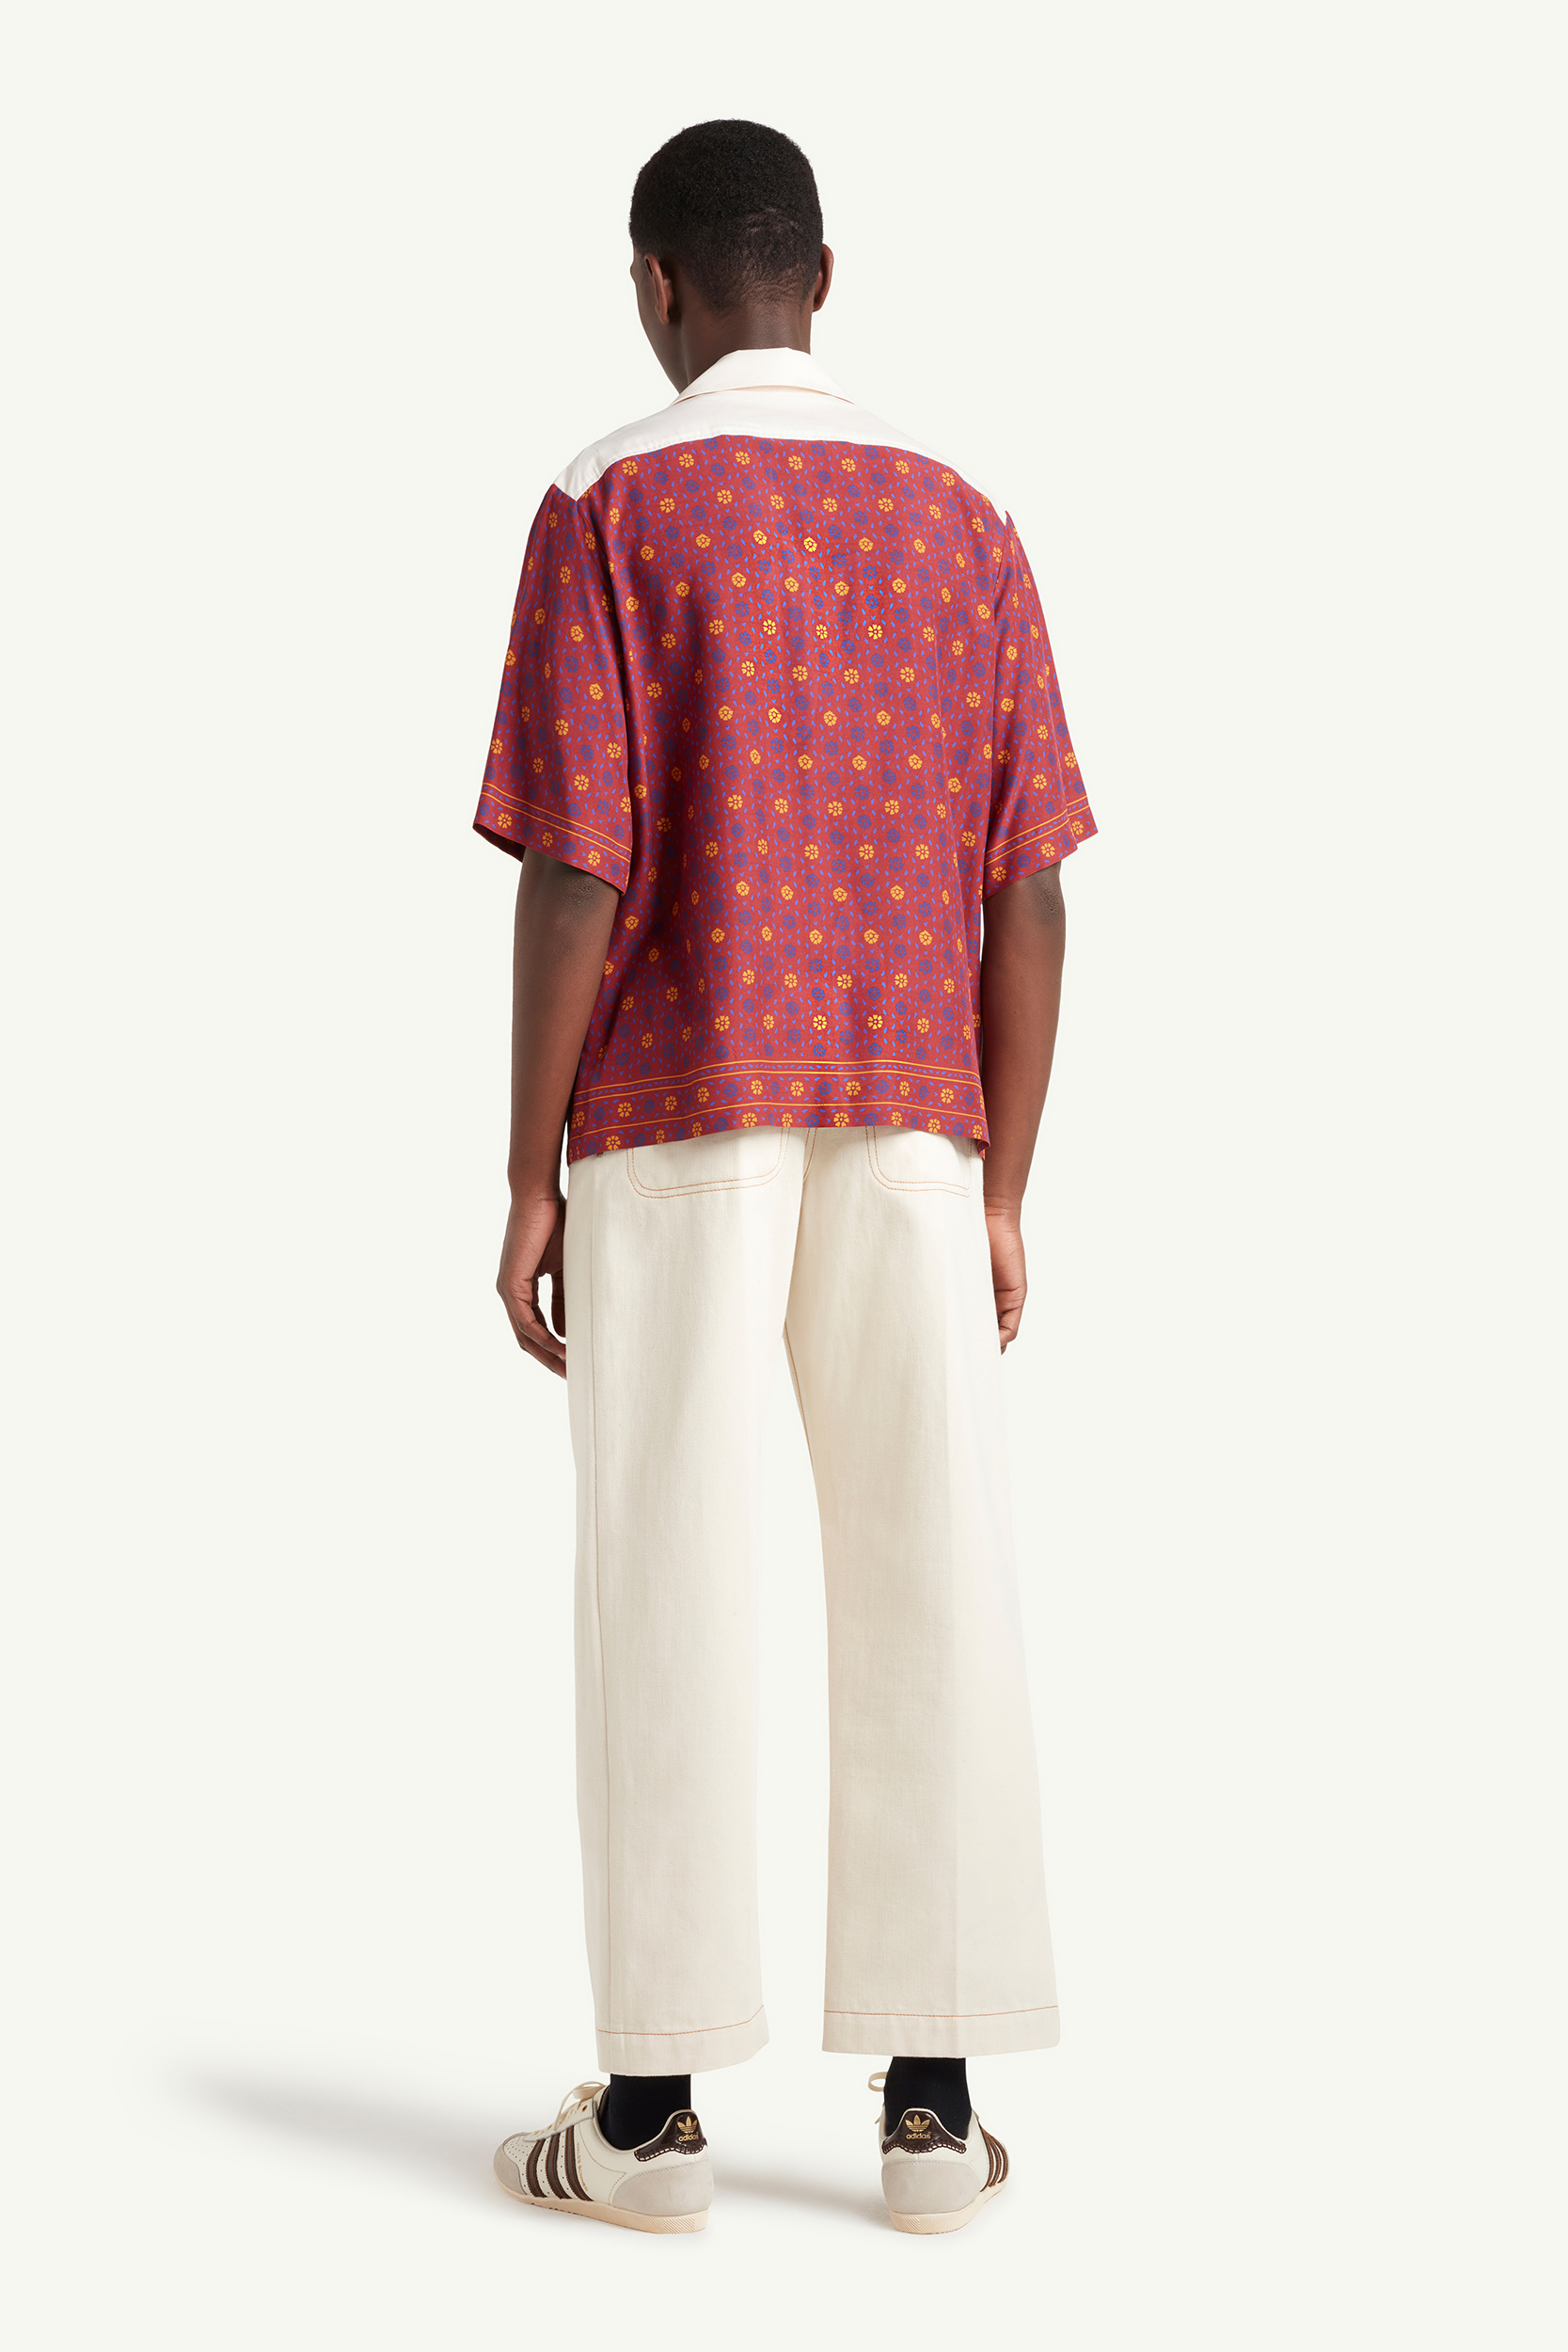 Wales Bonner Menswear Model wearing a white and burgundy pattern shirt with white cropped trousers | LRP